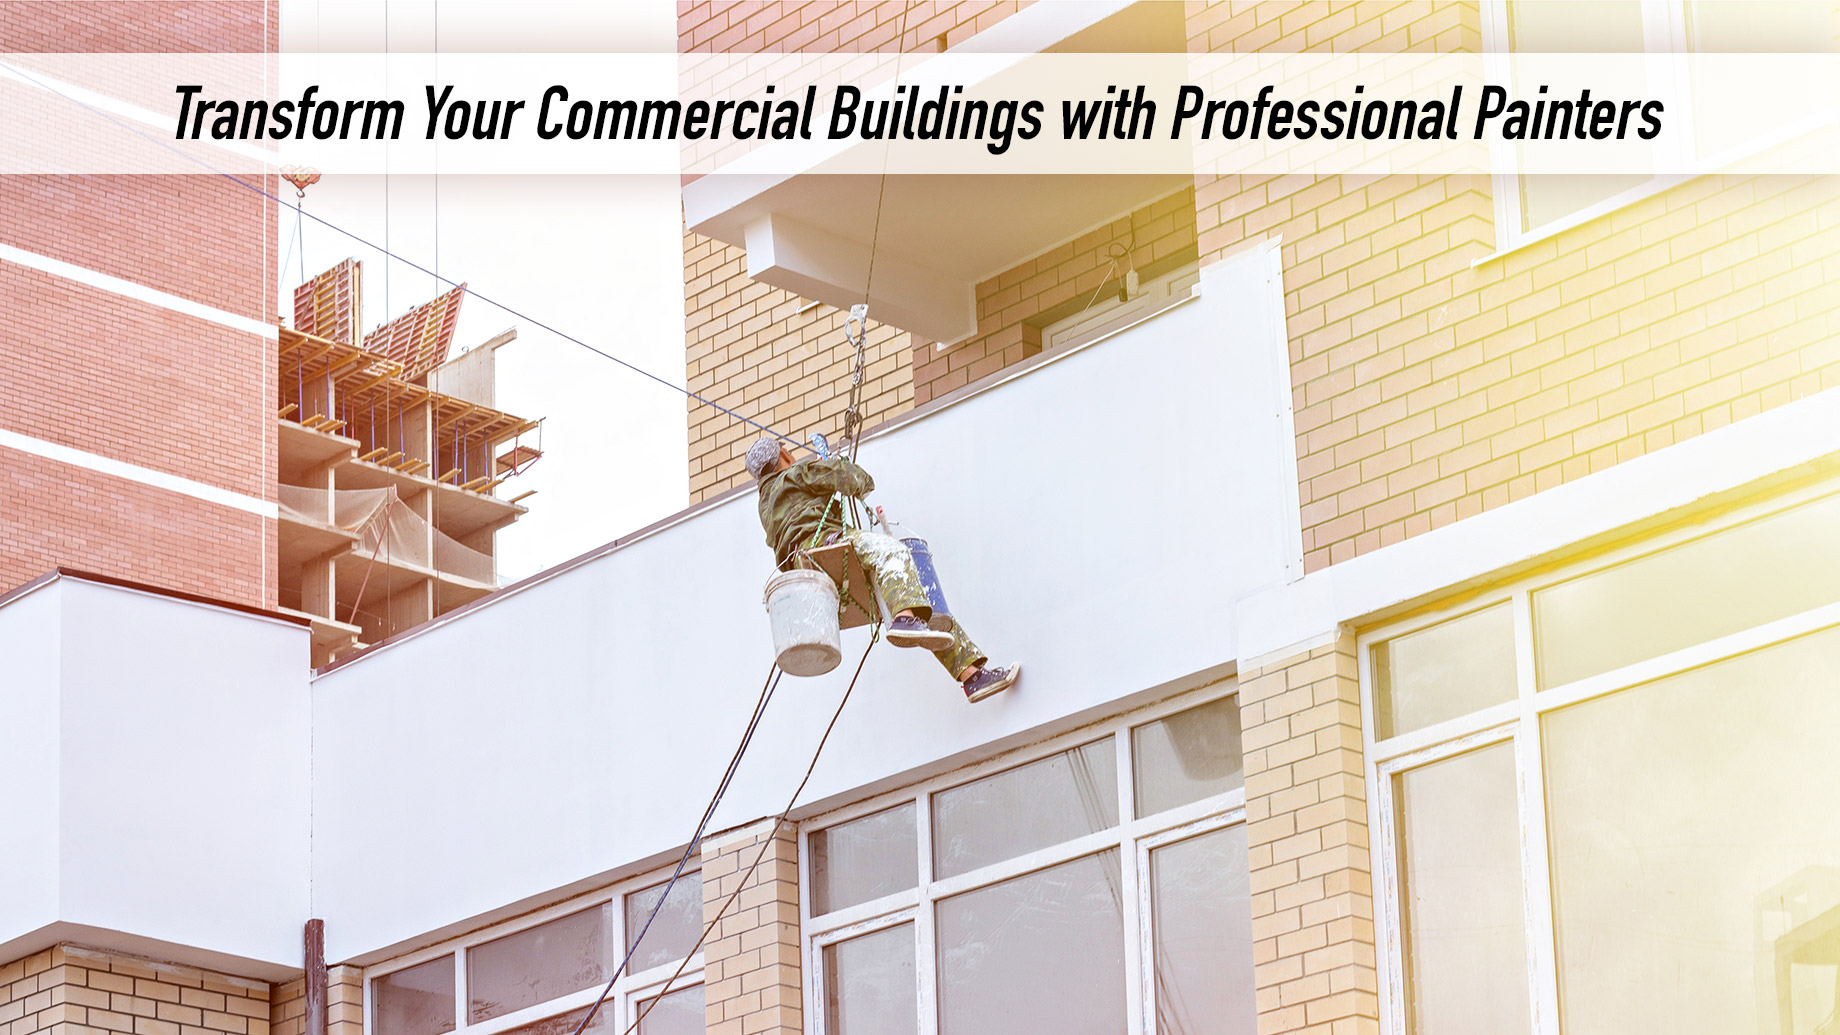 Transform Your Commercial Buildings with Professional Painters